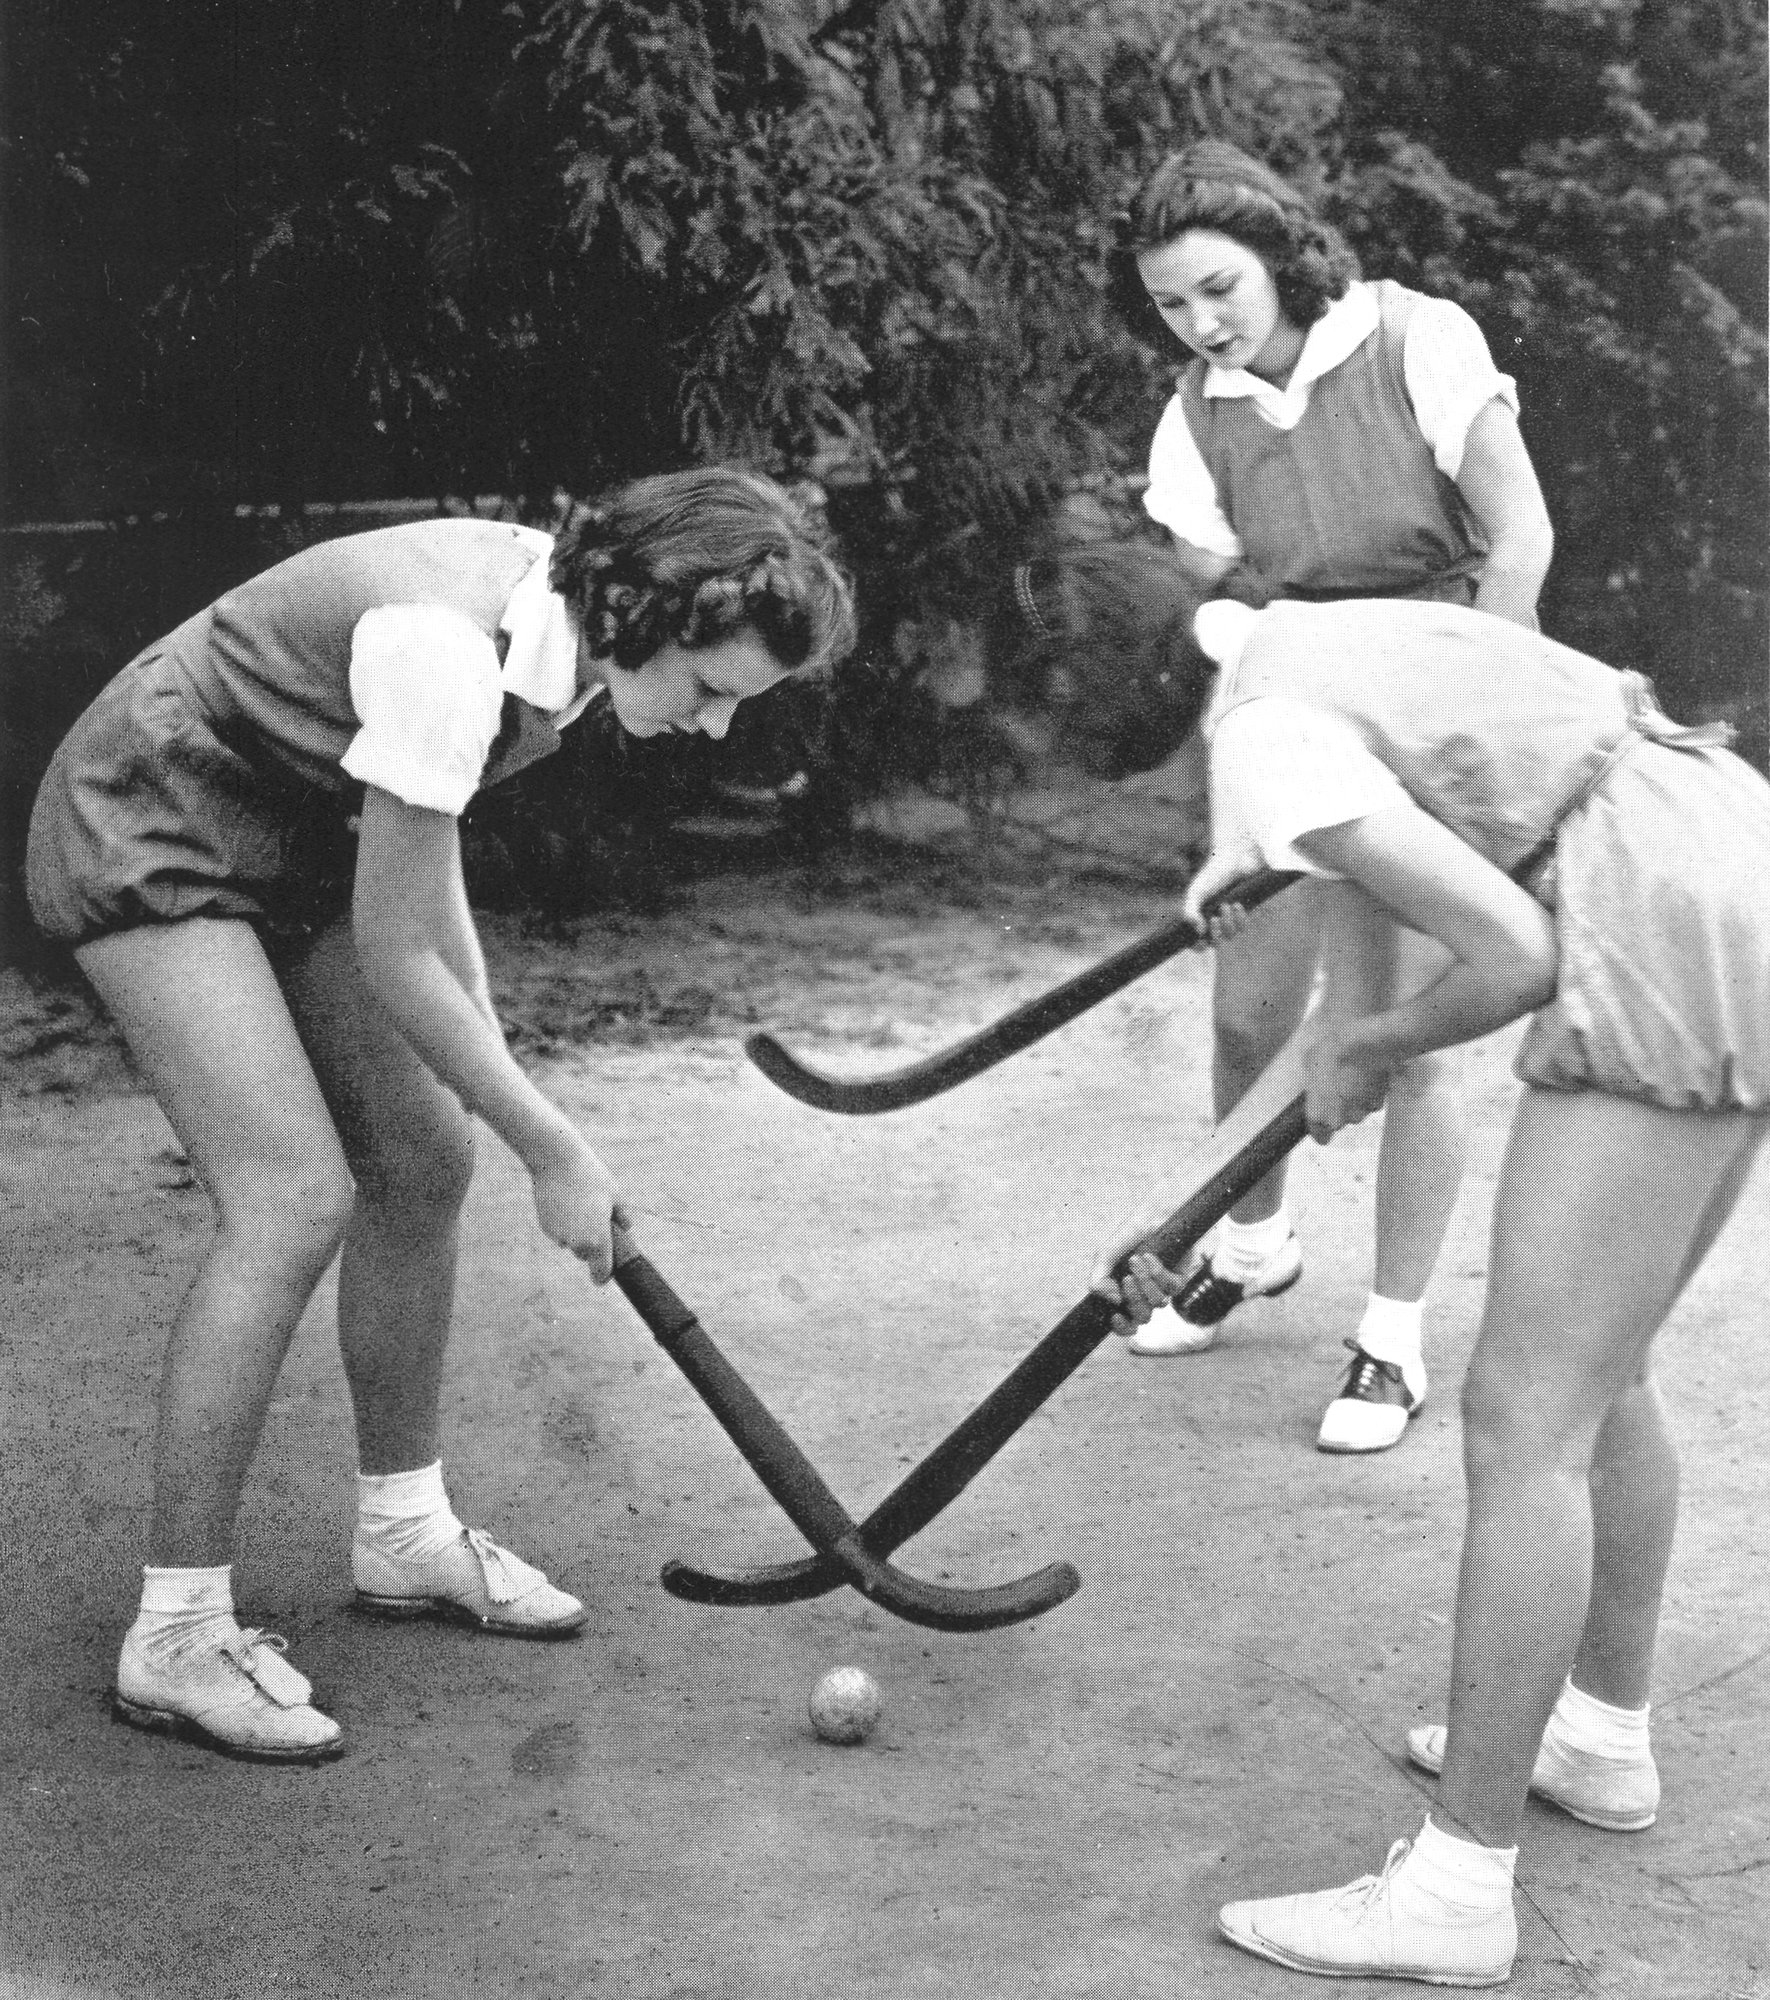 A group of Sumter High School girls plays field hockey in 1938. Field hockey was a popular sport until the 1950s.